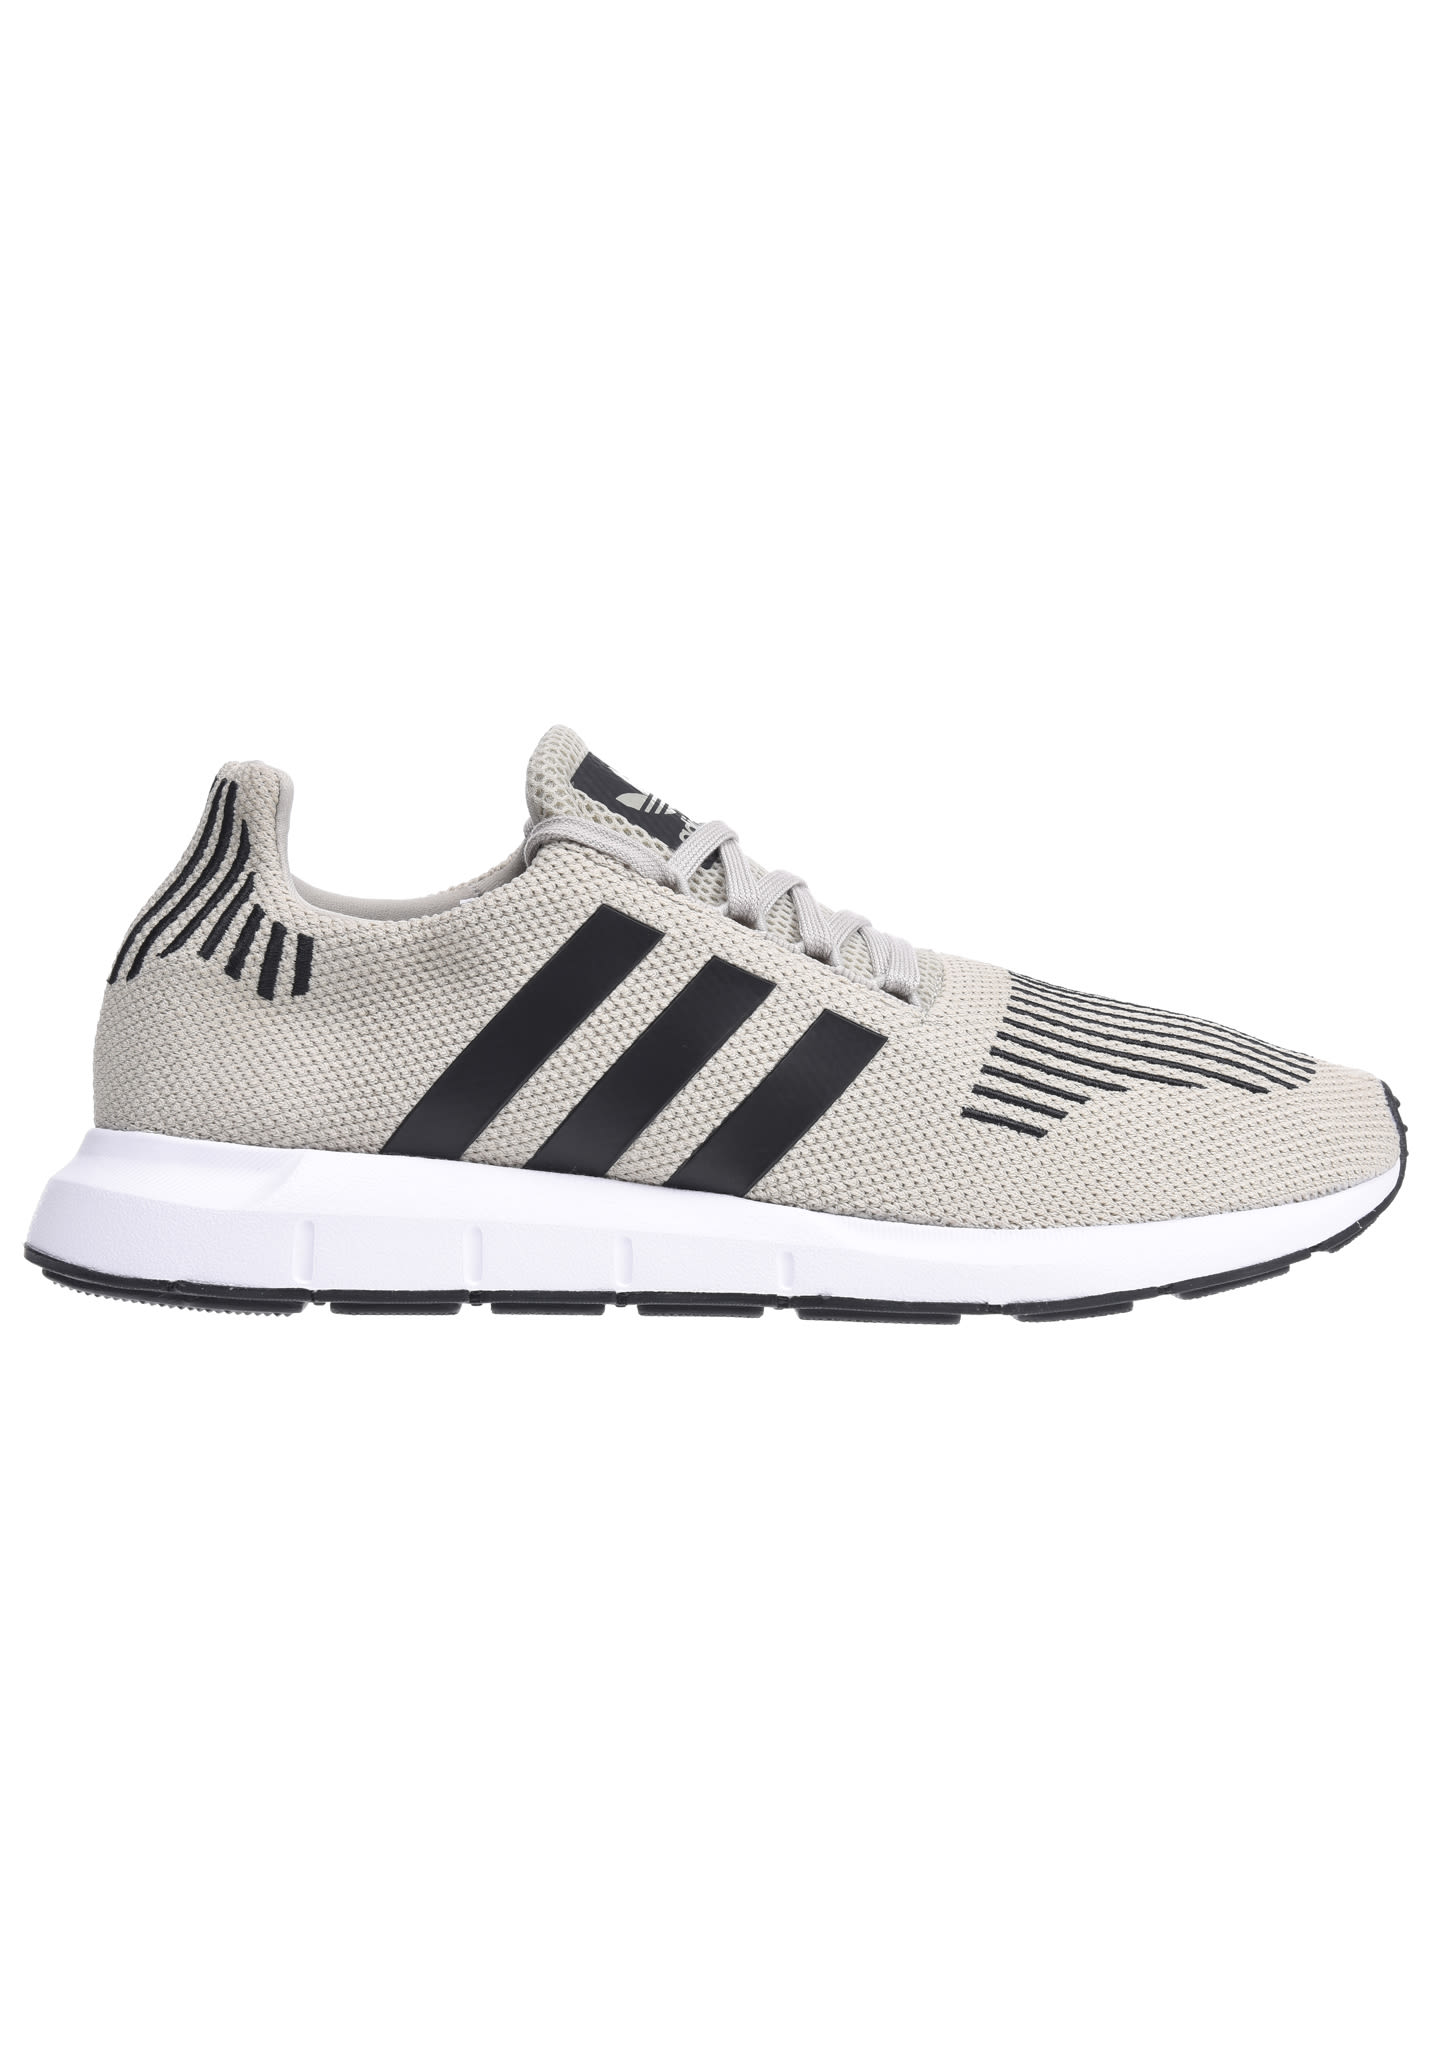 6d6bae8b084ae ADIDAS ORIGINALS Swift Run - Sneakers for Men - Beige - Planet Sports